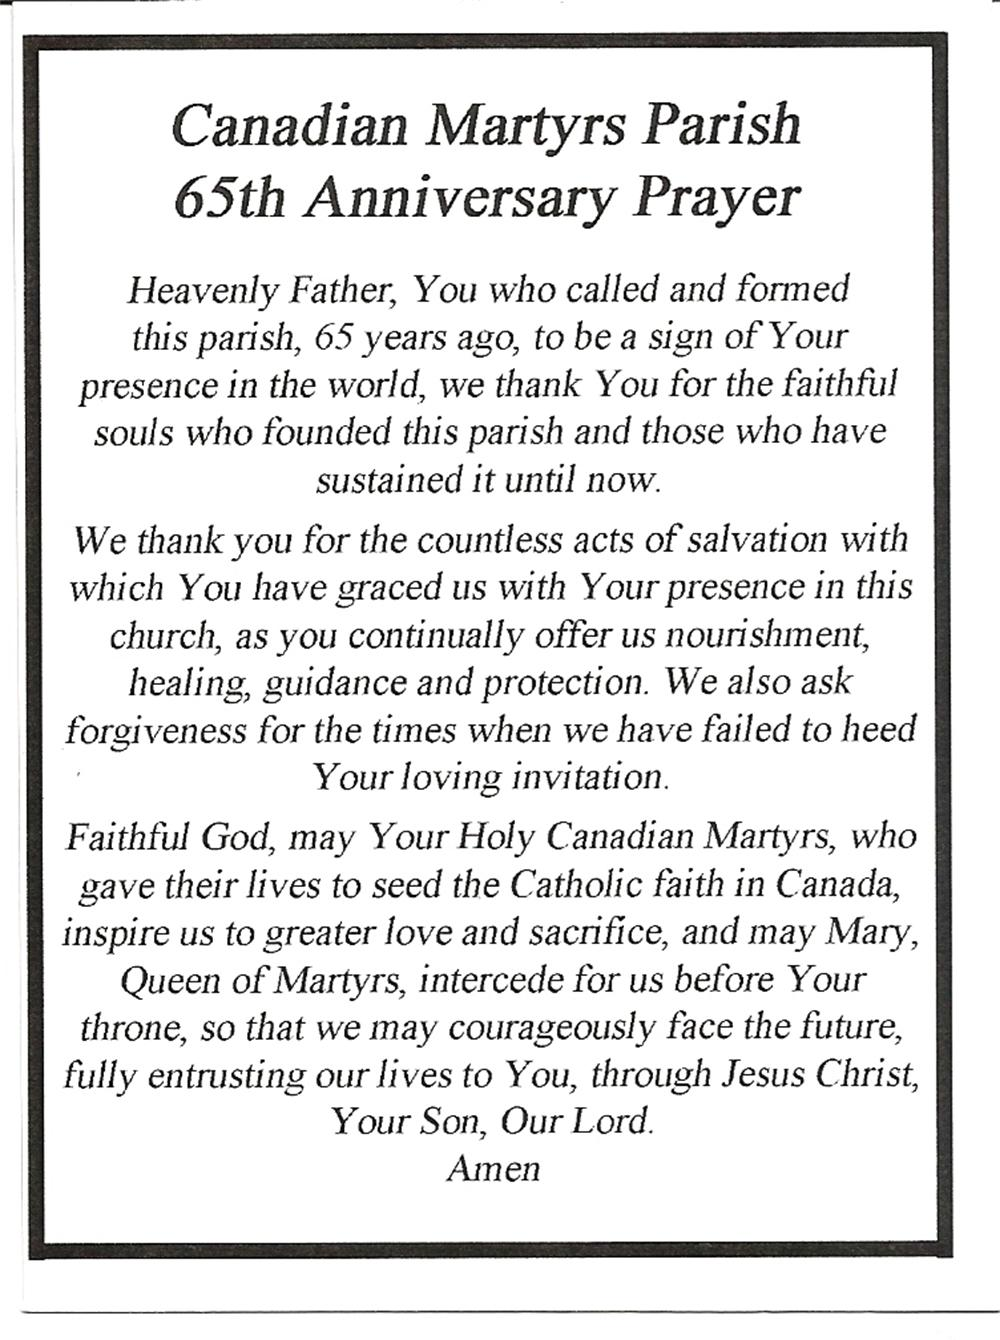 Canadian Martyrs Parish 65th Anniversary